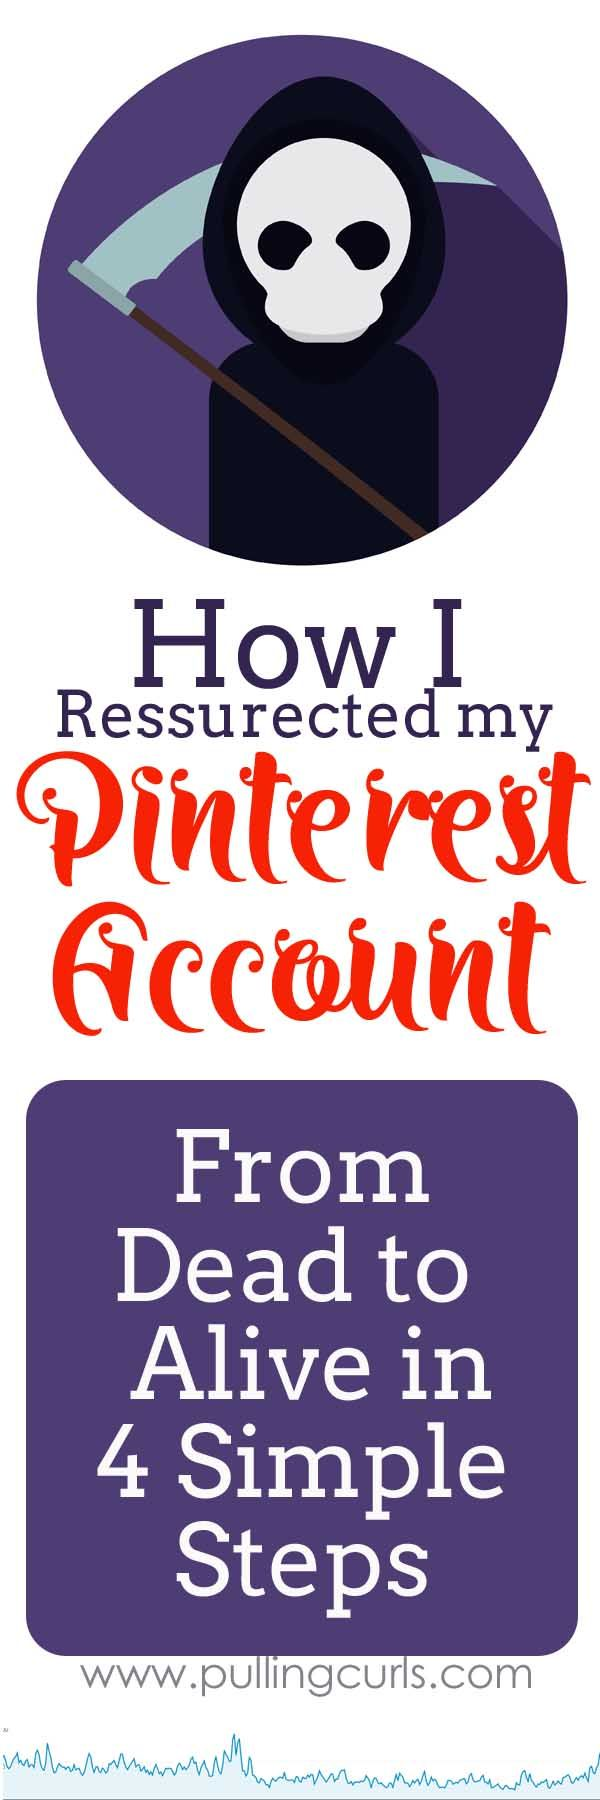 Pinterest Traffic | social media | website | blogger | money | how to get | foll... f85291d0e55d6fdada5eee08572f2511  get followers pinterest marketing